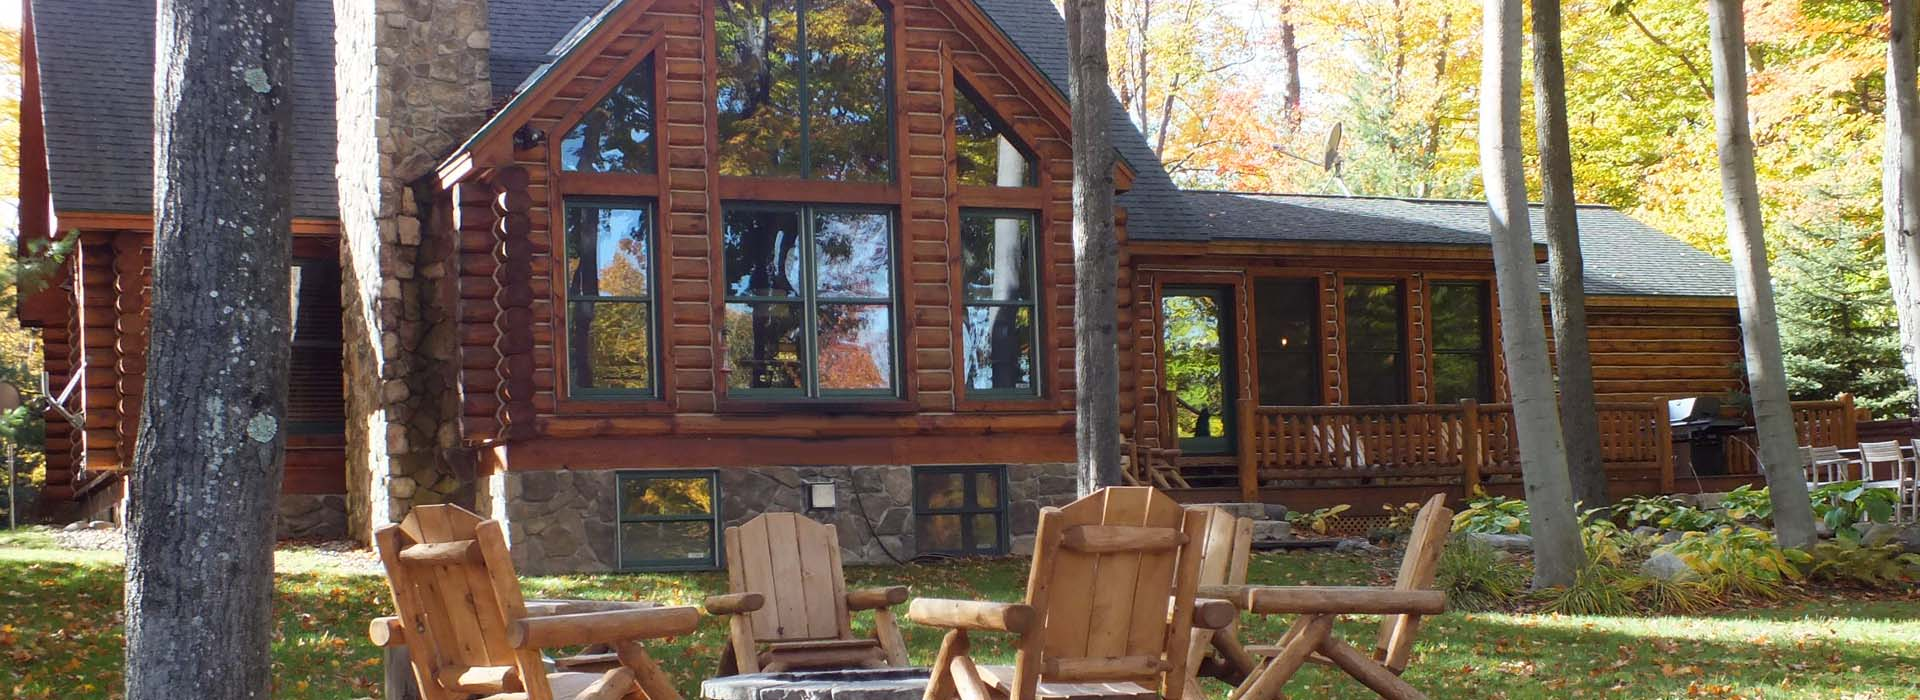 Harbor Springs Petoskey Michigan Vacation Rentals